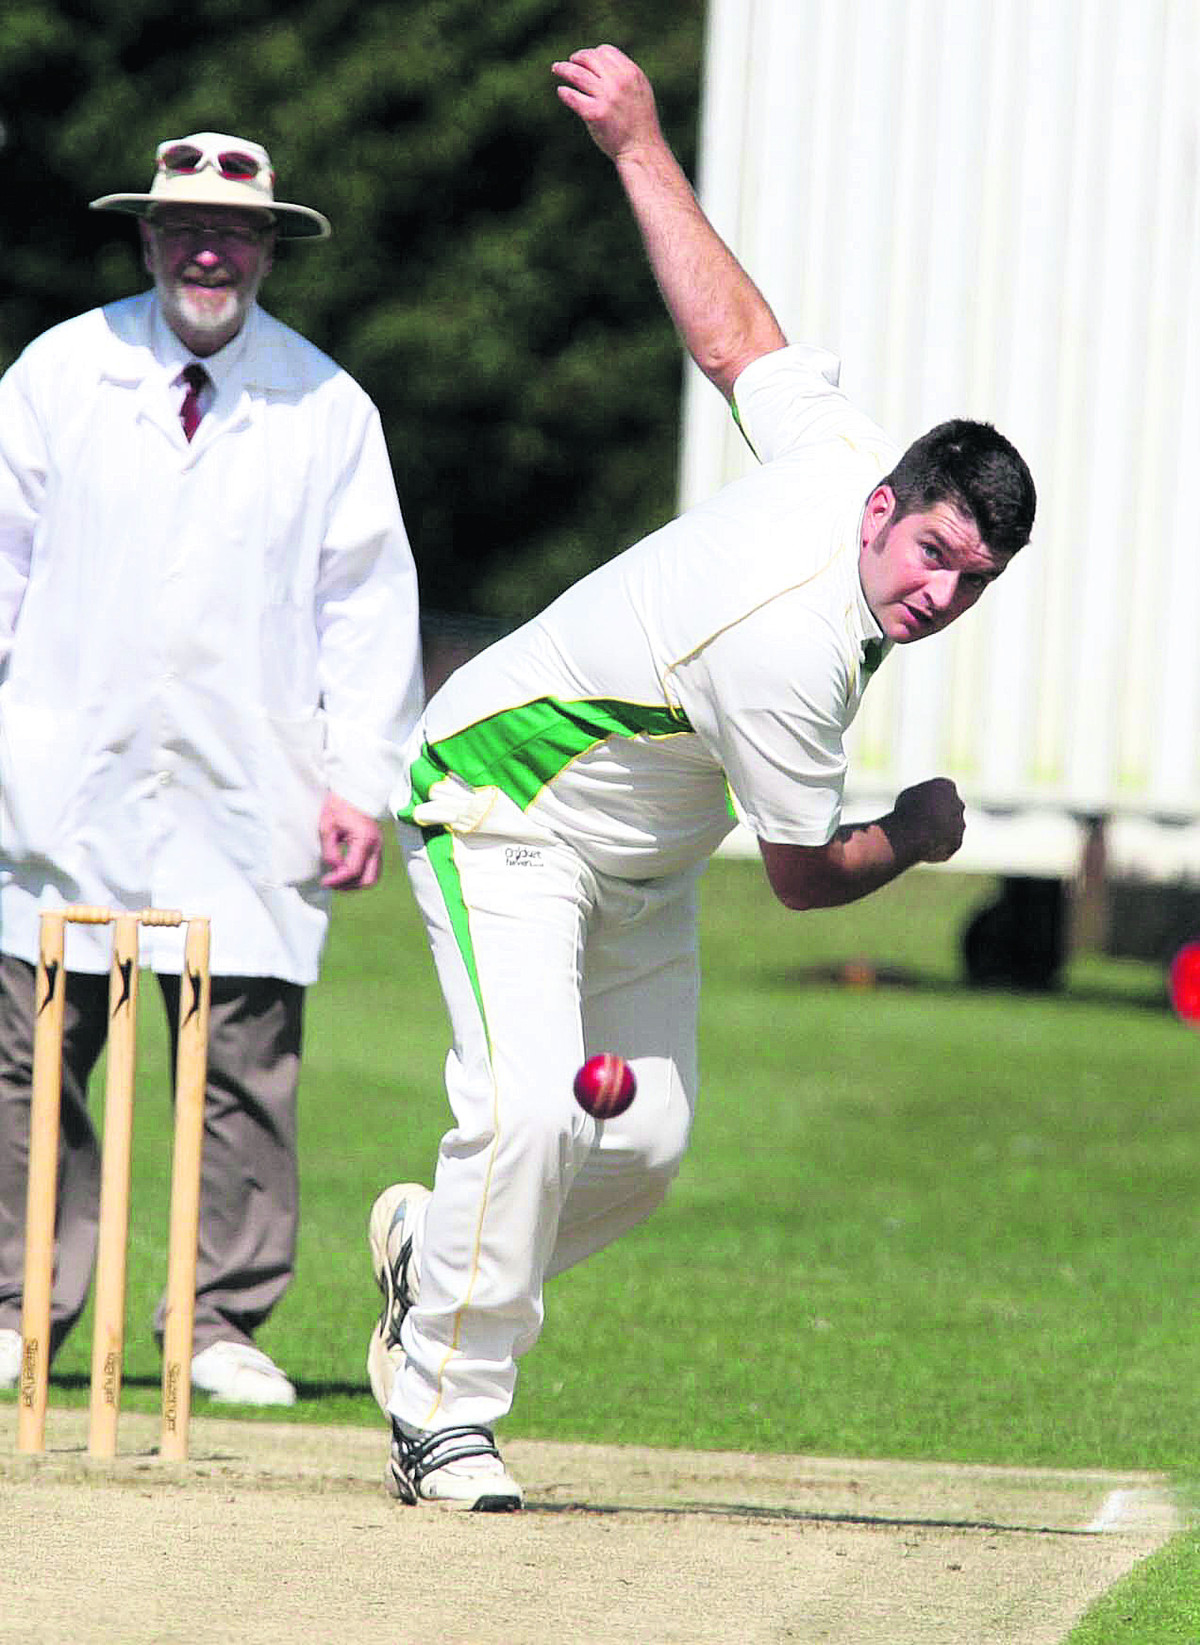 Chesterton's Trevor Price took 5-12 as he helped them to a nine-wicket win against Wolvercote in Division 3 on Saturday